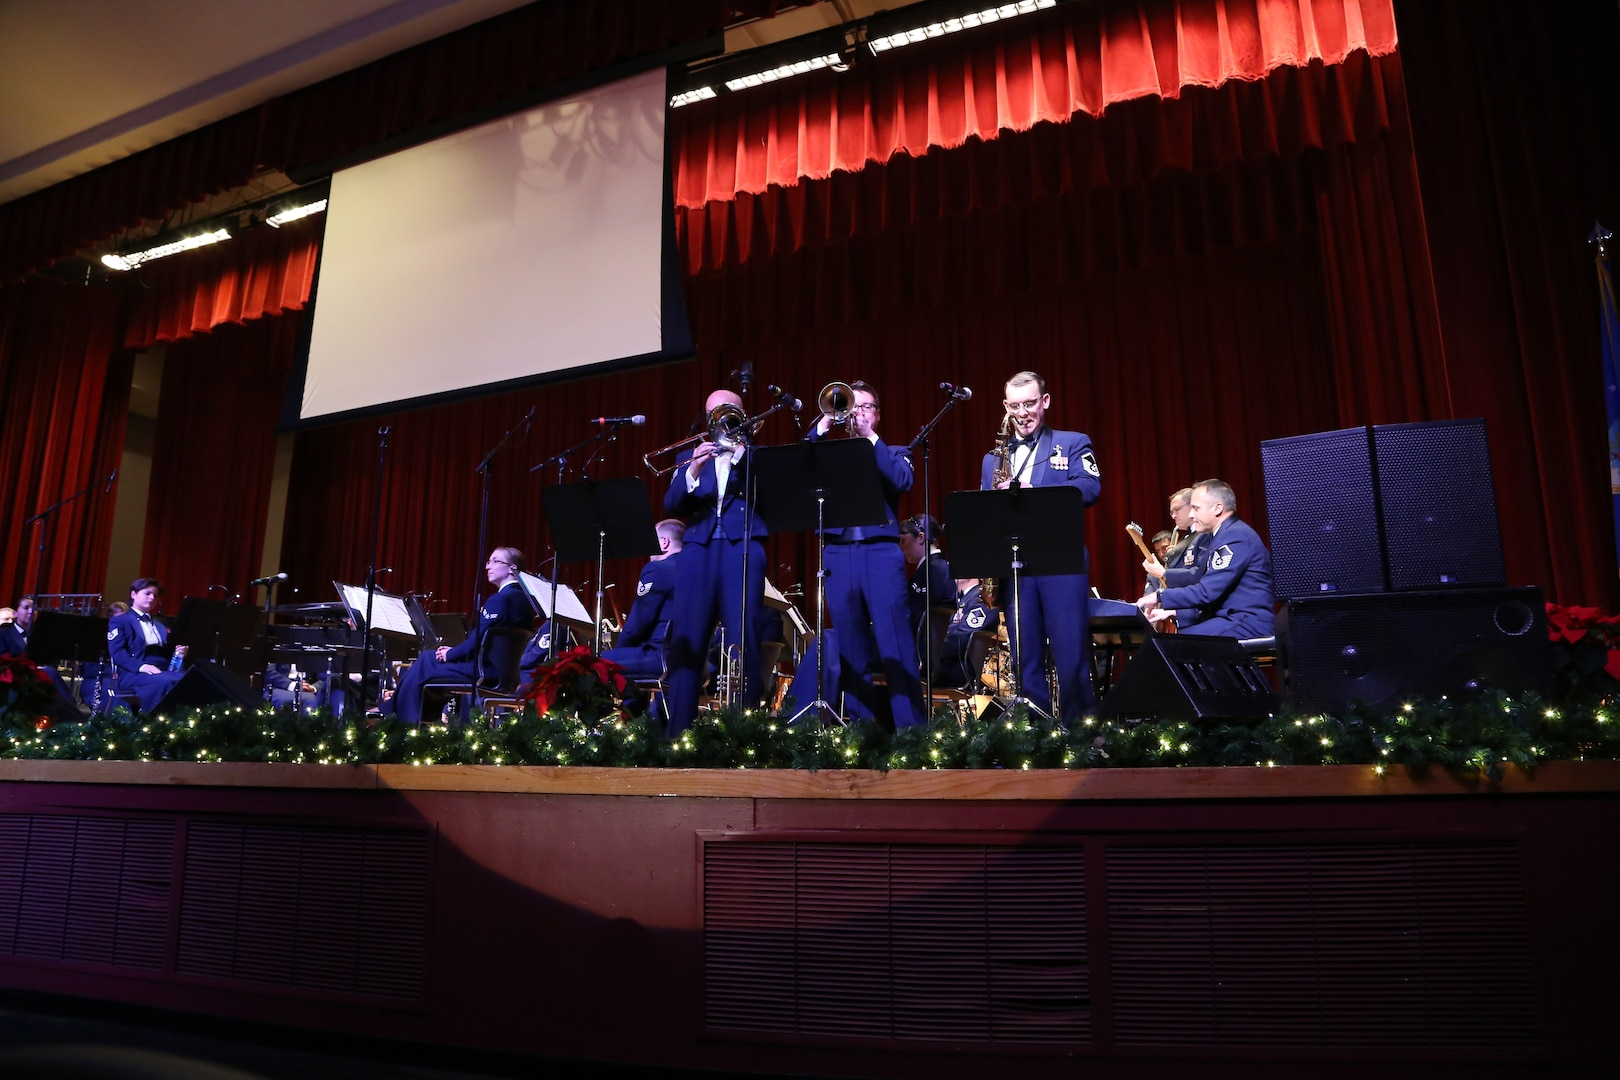 """Members of the Air Force Band of the West's musical ensemble """"Warhawk"""" play a variety of holiday songs Dec. 17 at the Joint Base San Antonio-Lackland Bob Hope Theater. (U.S. Air Force photo by Airman 1st Class Lincoln Korver)"""